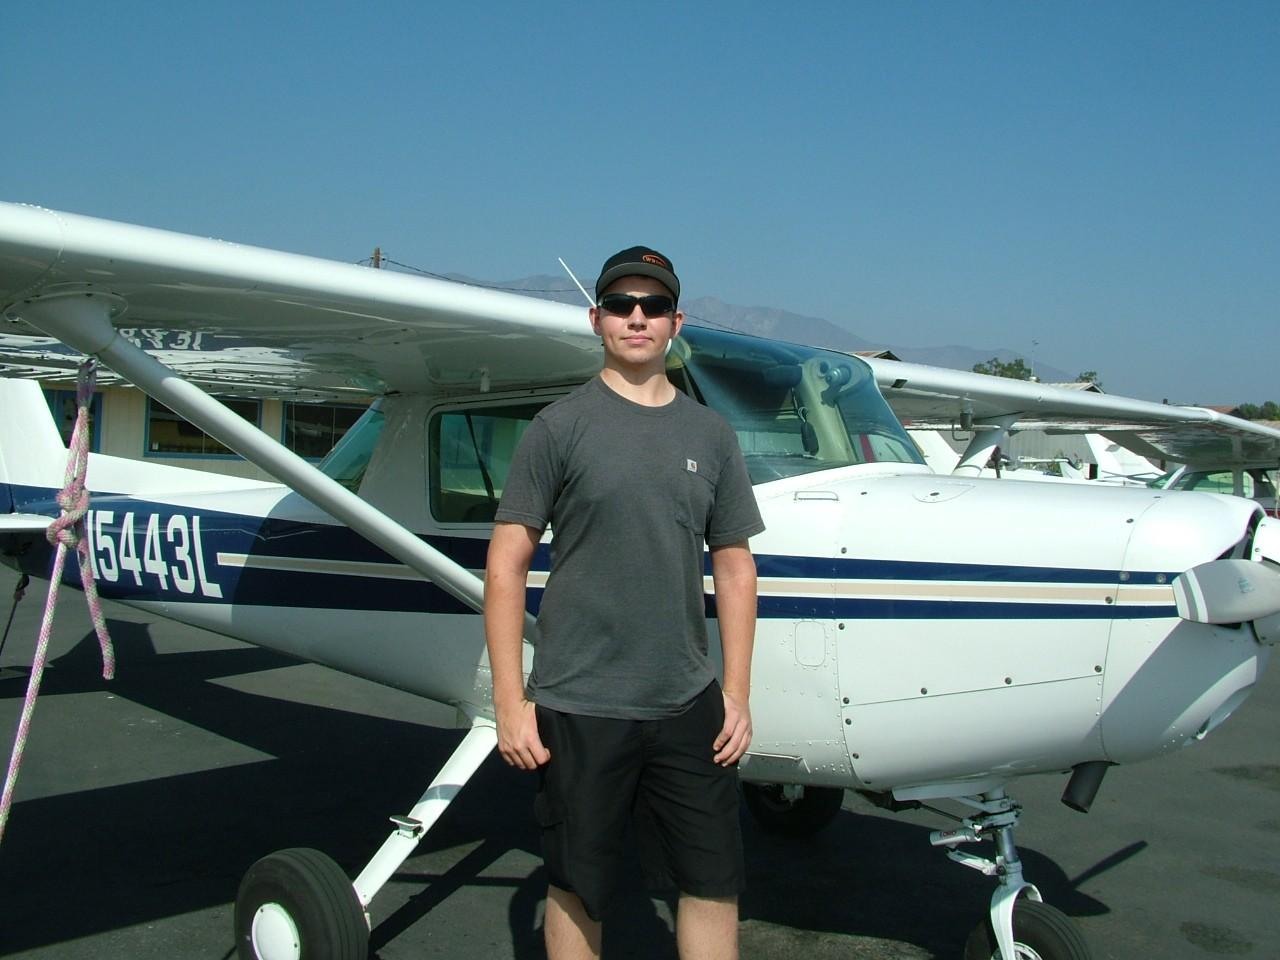 Happy 17th Birthday and Private Pilot - Ryan Lindsay!